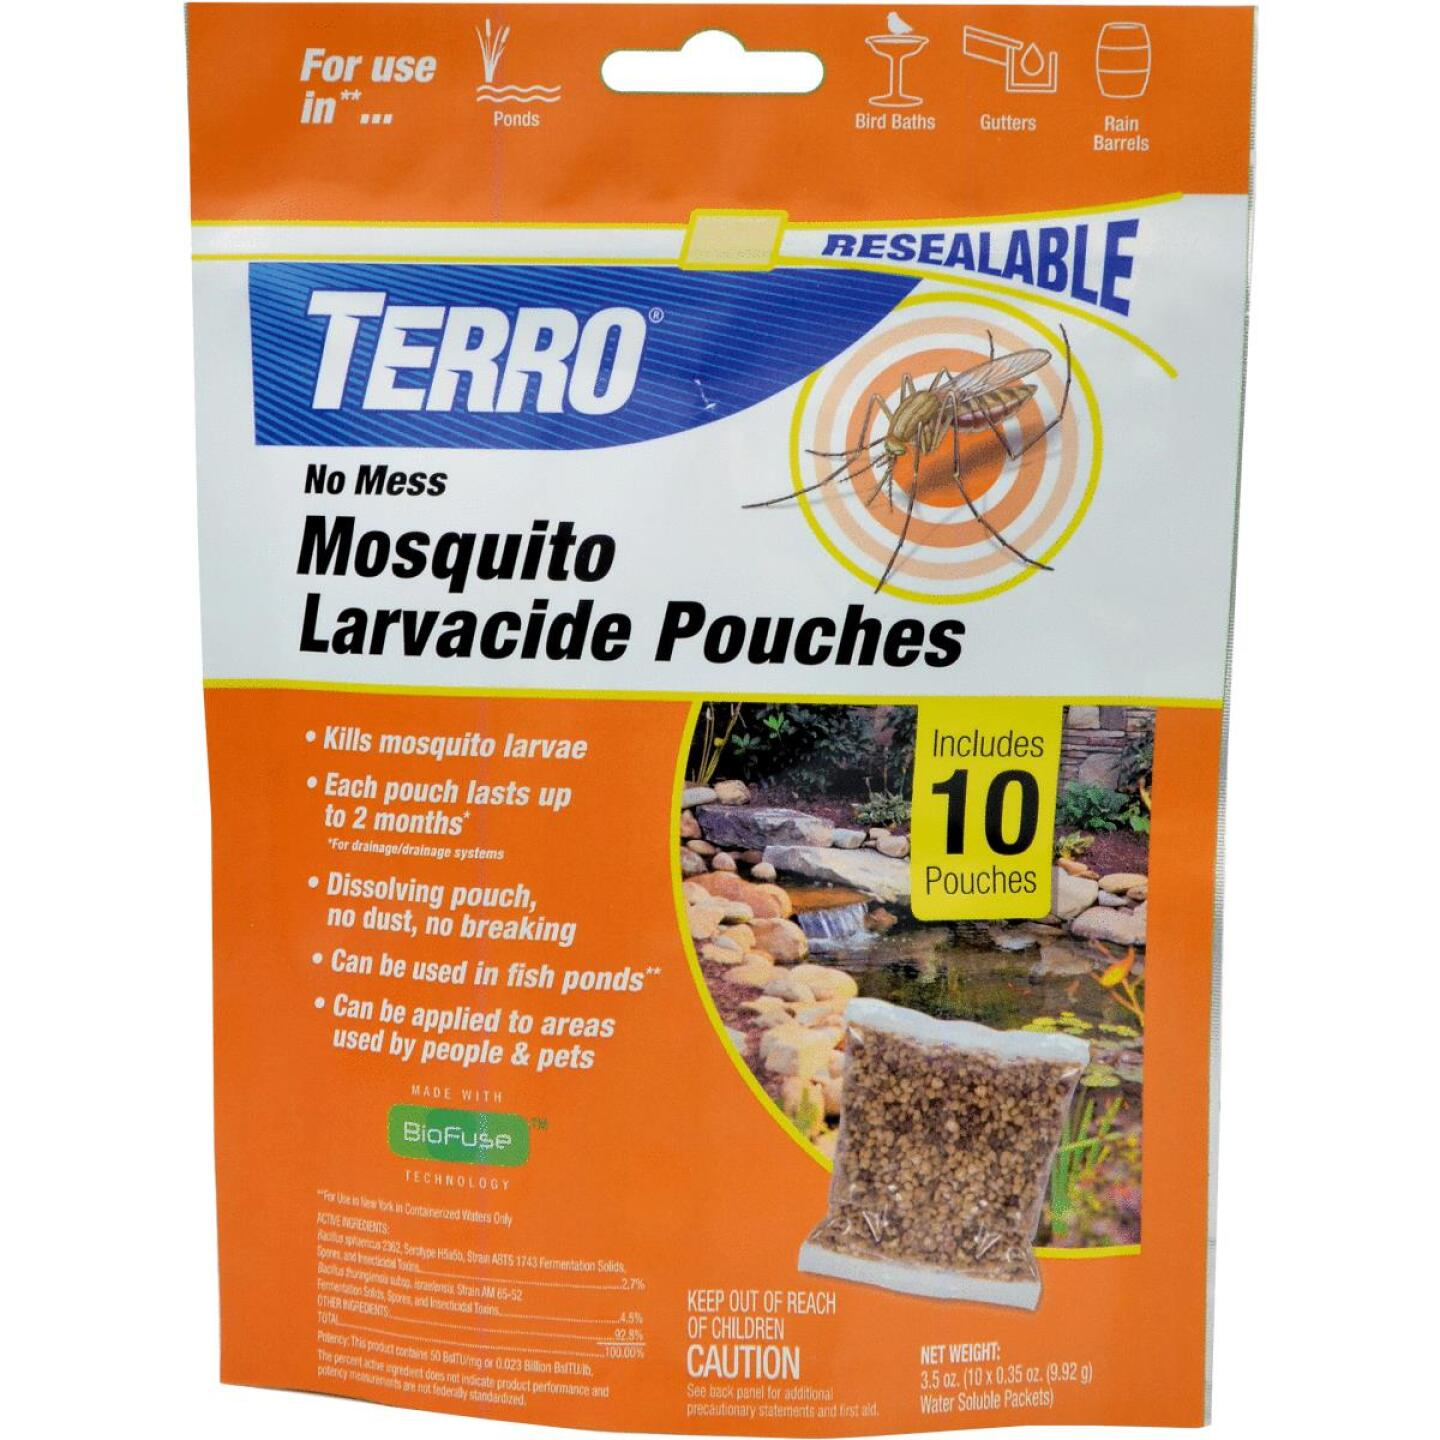 Terro No Mess Ready To Use Pouch Mosquito Larvacide Killer (10-Pack) Image 1